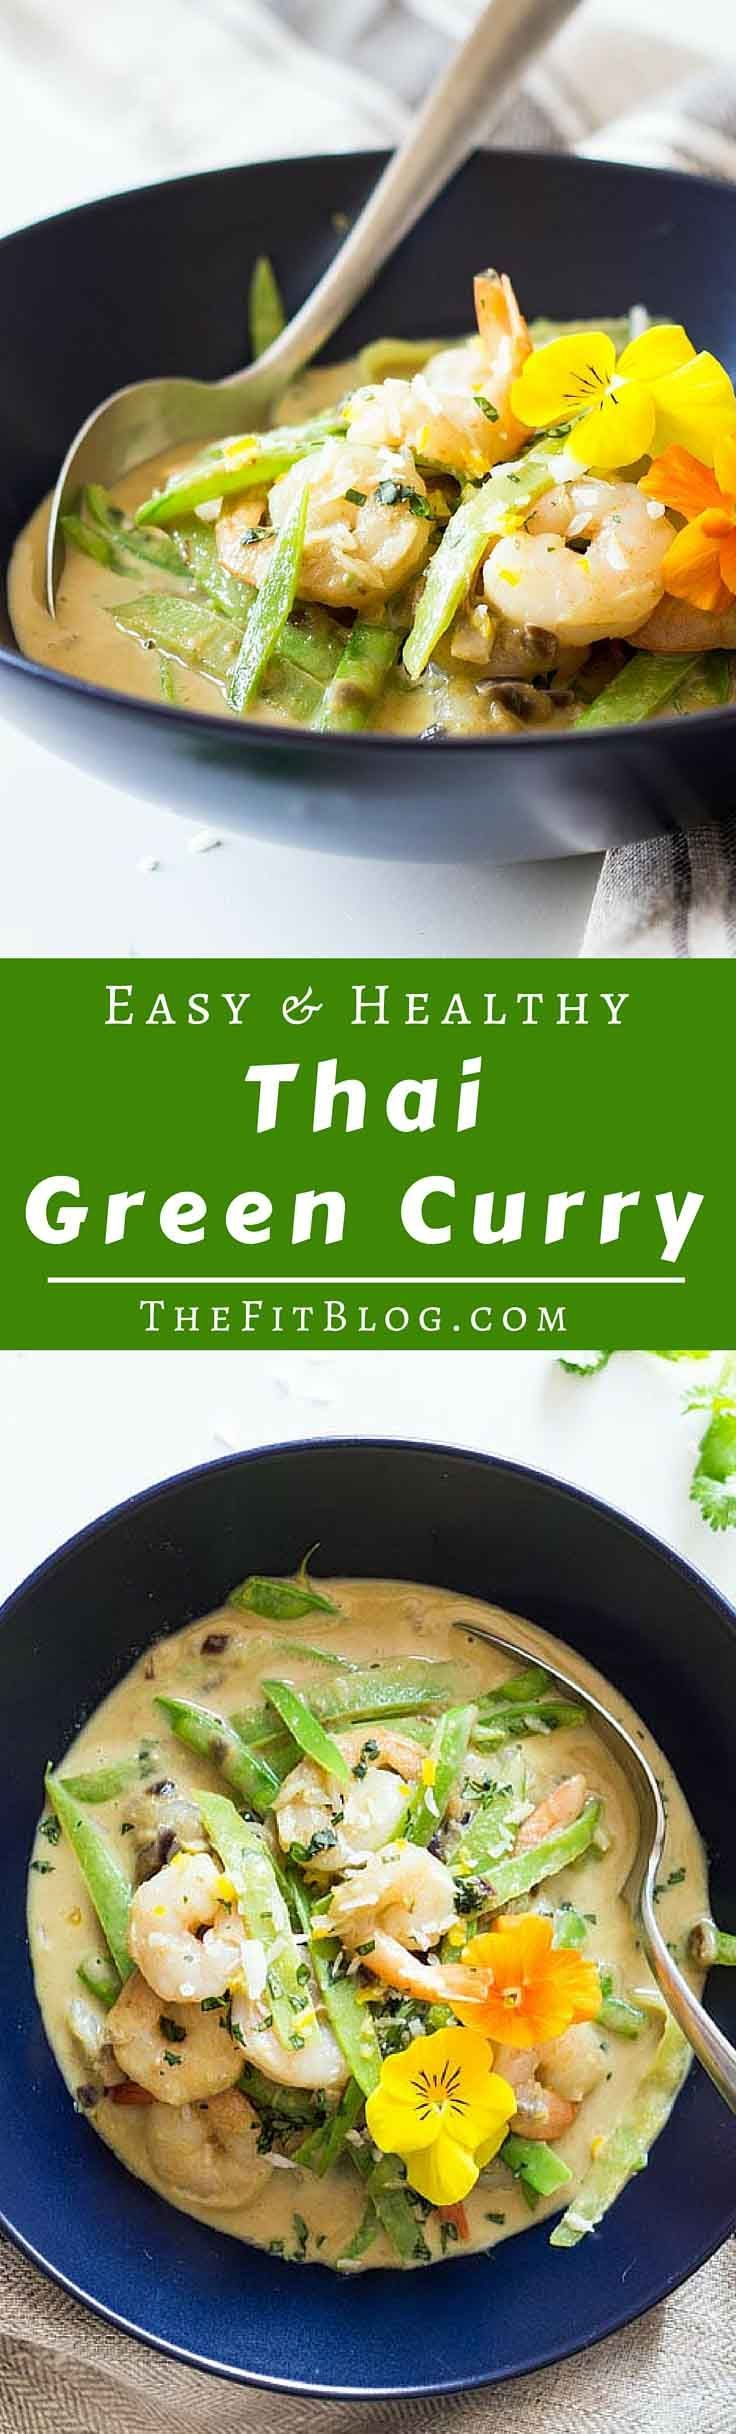 1679 best healthy creative recipes images on pinterest cooking a healthy easy and delicious thai green curry with shrimp whipped up in only 20 forumfinder